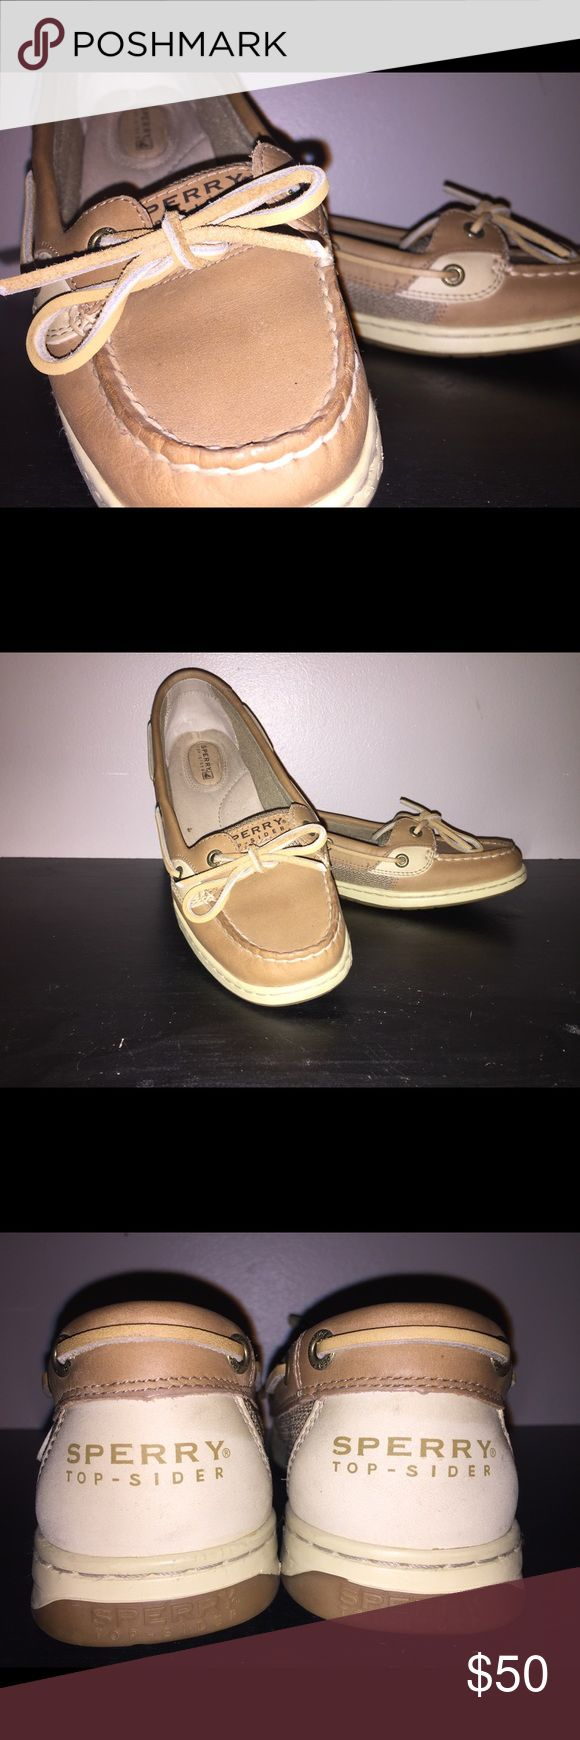 Sperry Women's Angelfish Boat Shoe Size 9. Worn 3 times. Look relatively new. Sperry Shoes Flats & Loafers